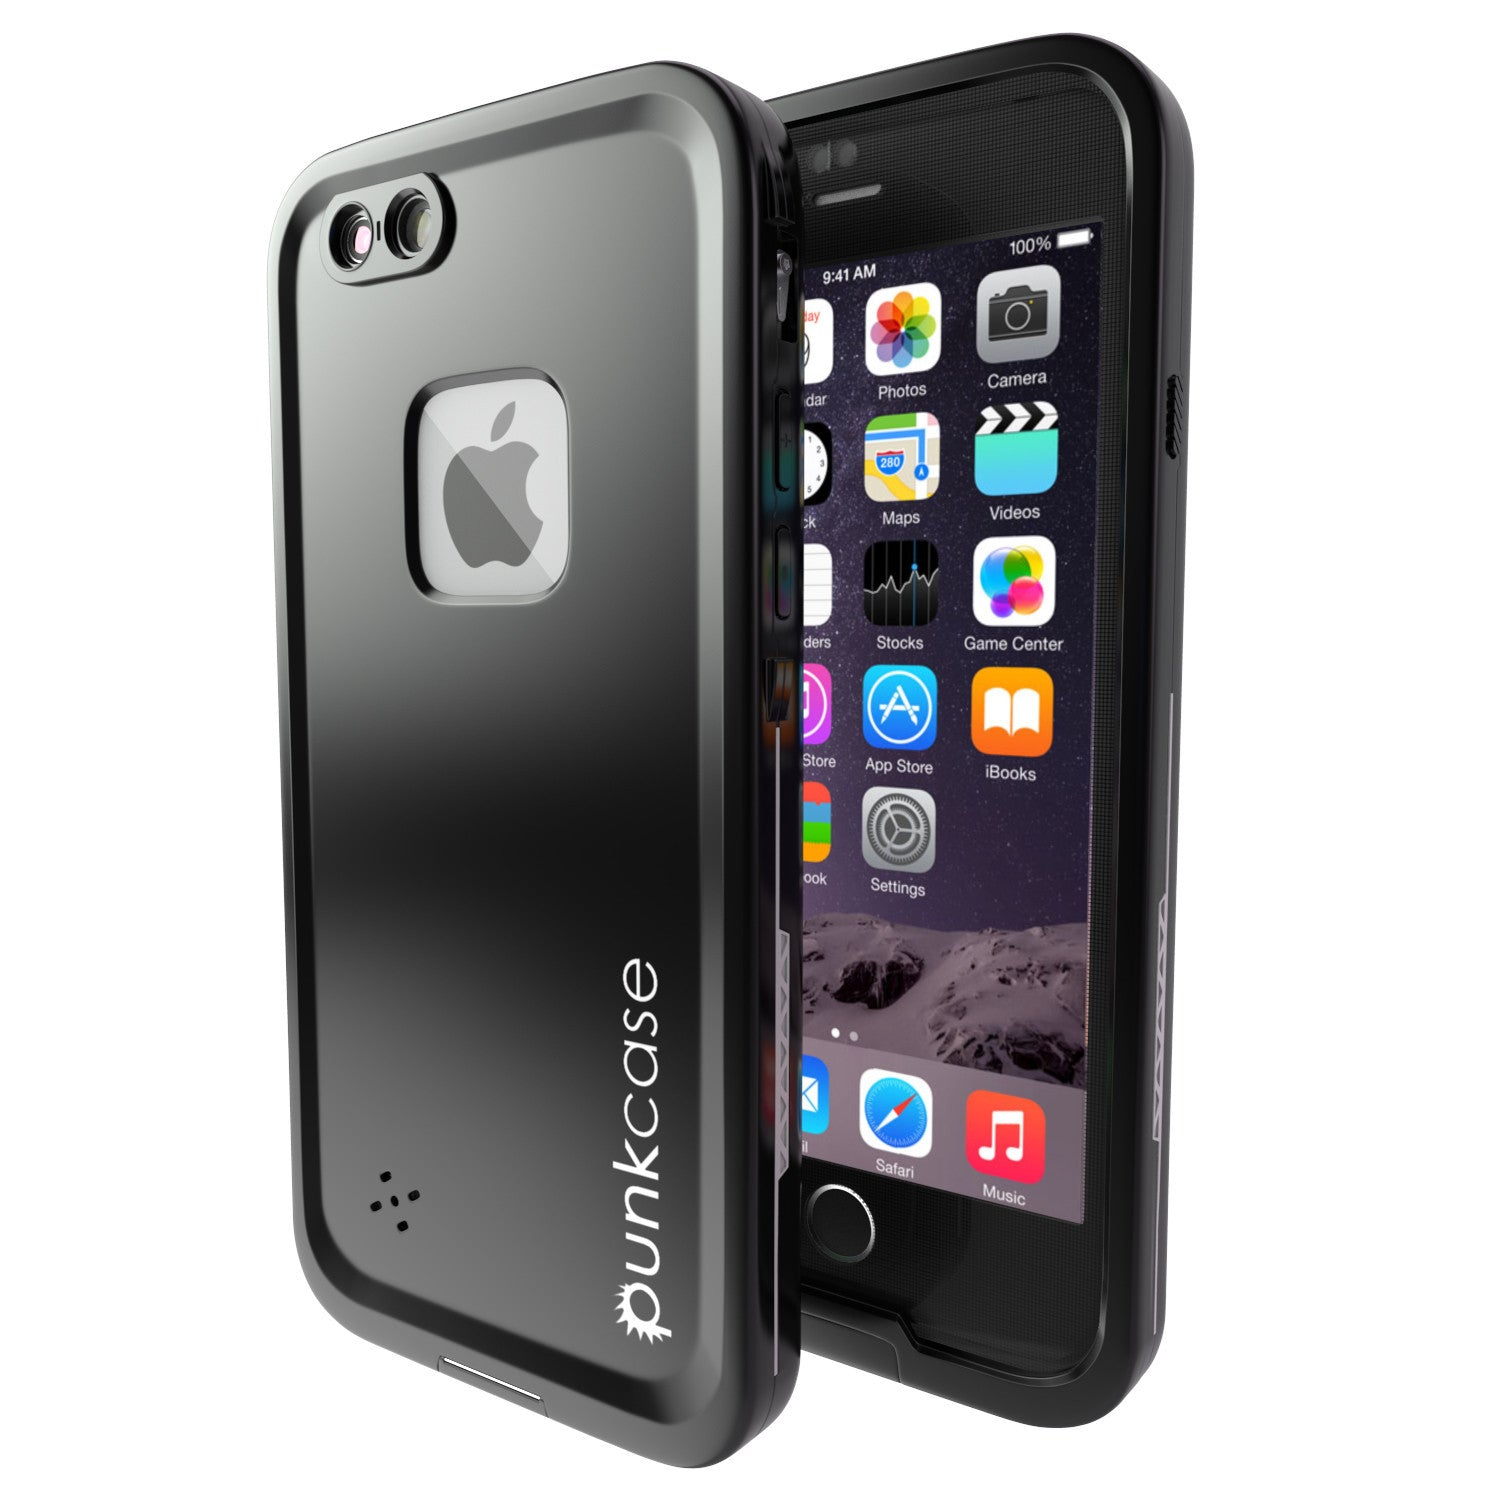 iPhone 6S+/6+ Plus Waterproof Case, Punkcase SpikeStar Black | Thin Fit 6.6ft Underwater IP68